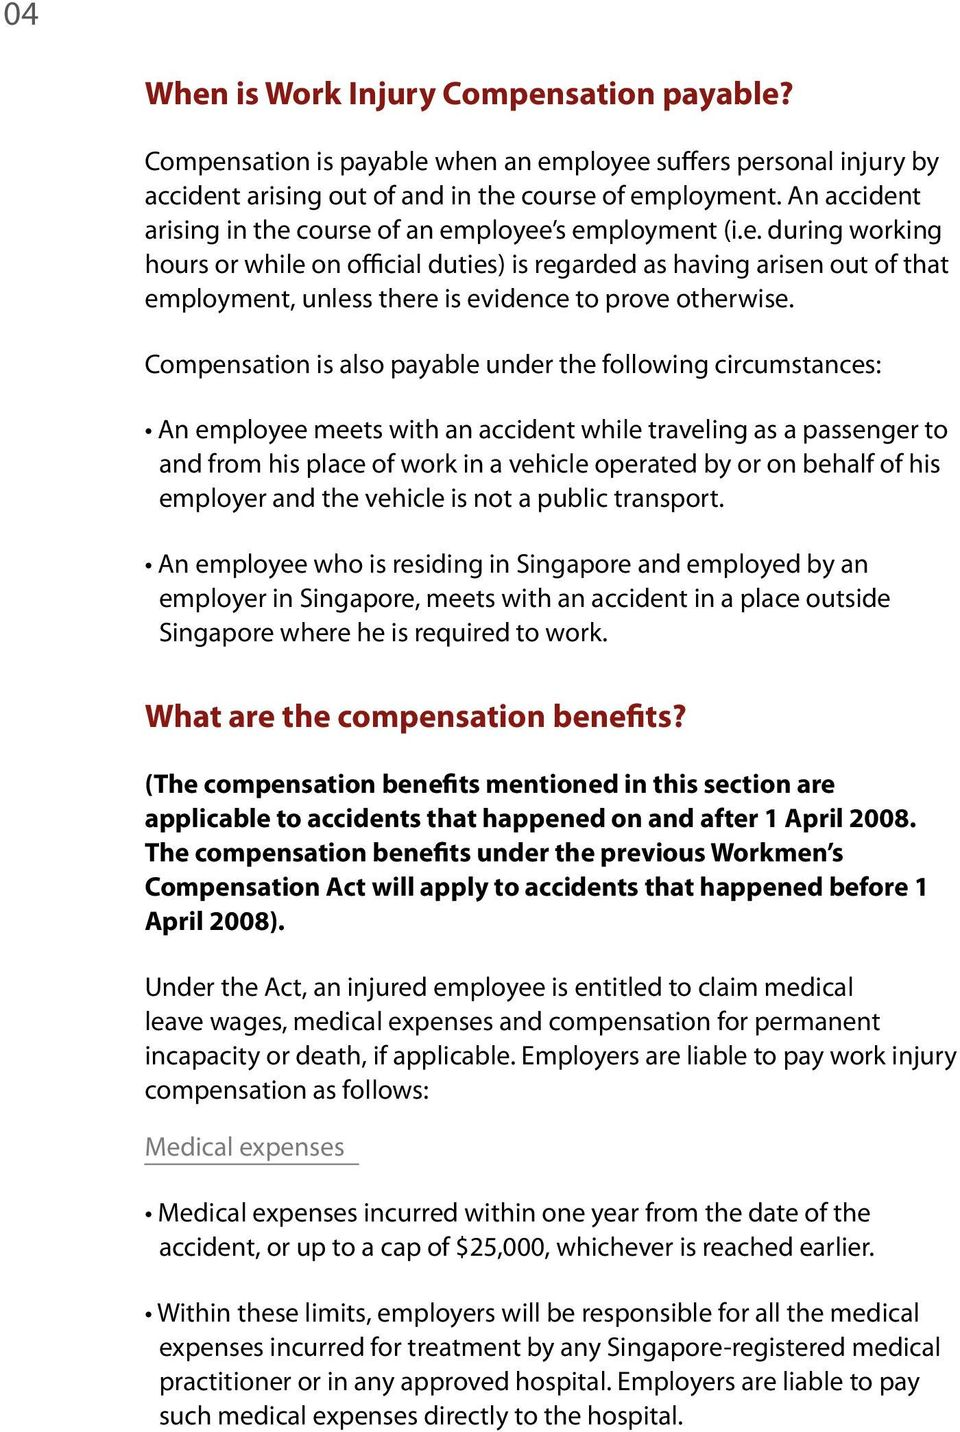 Compensation is also payable under the following circumstances: An employee meets with an accident while traveling as a passenger to and from his place of work in a vehicle operated by or on behalf